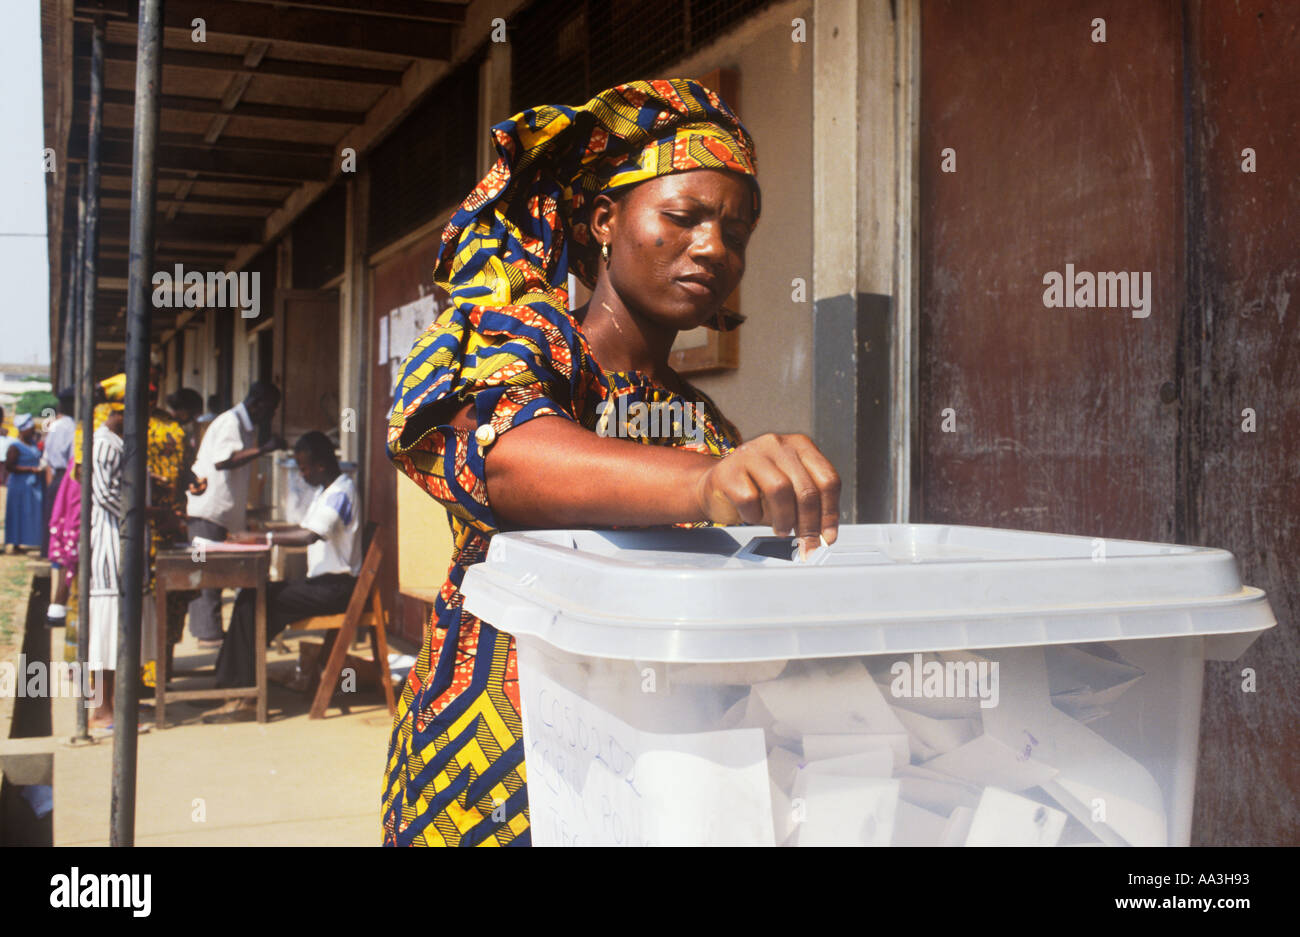 Voting in the 1996 presidential and parliamentary elections using a transparent ballot box Accra Ghana - Stock Image